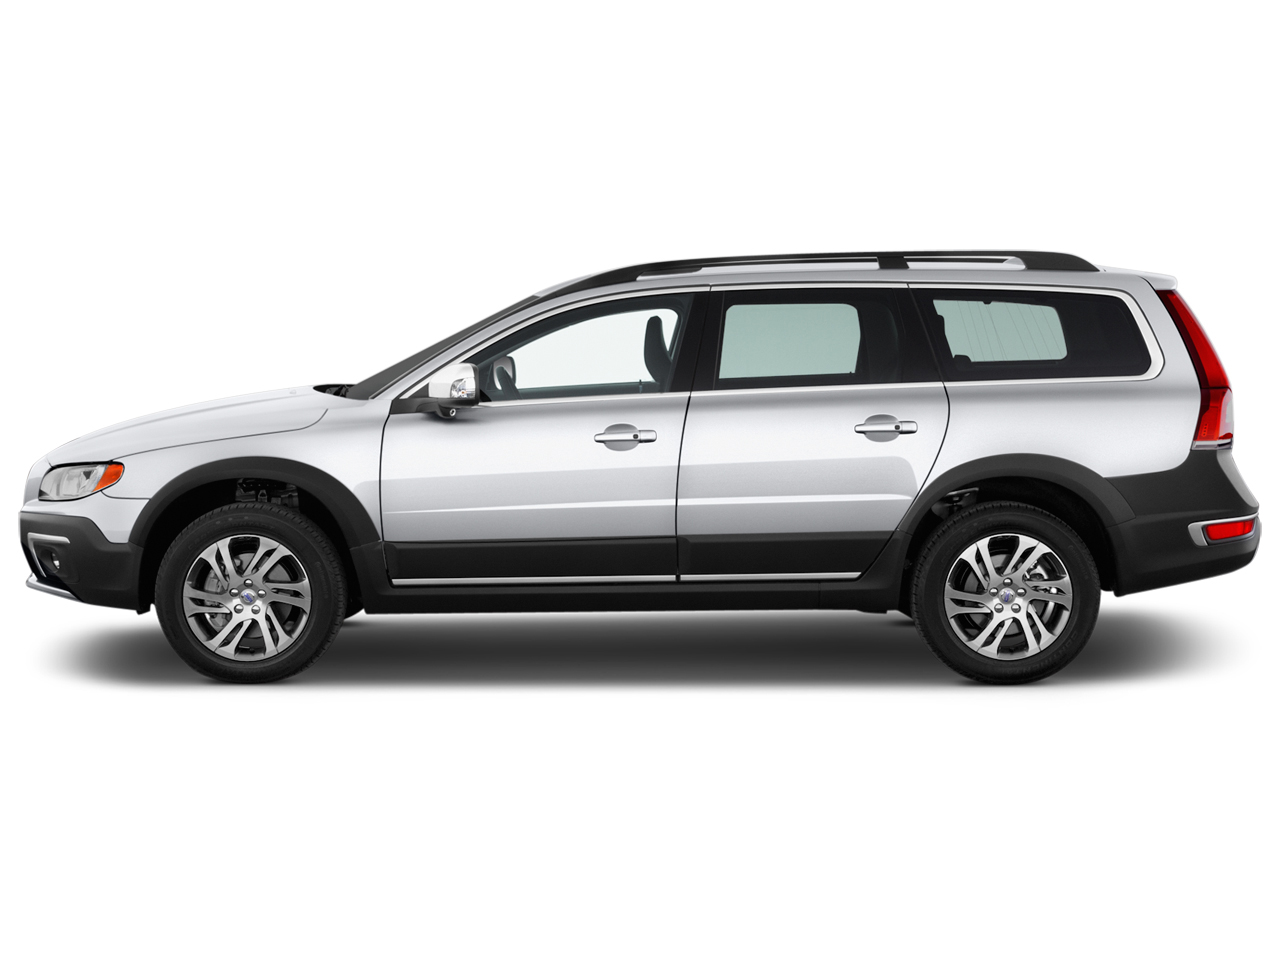 New and Used Volvo XC70: Prices, Photos, Reviews, Specs - The Car Connection